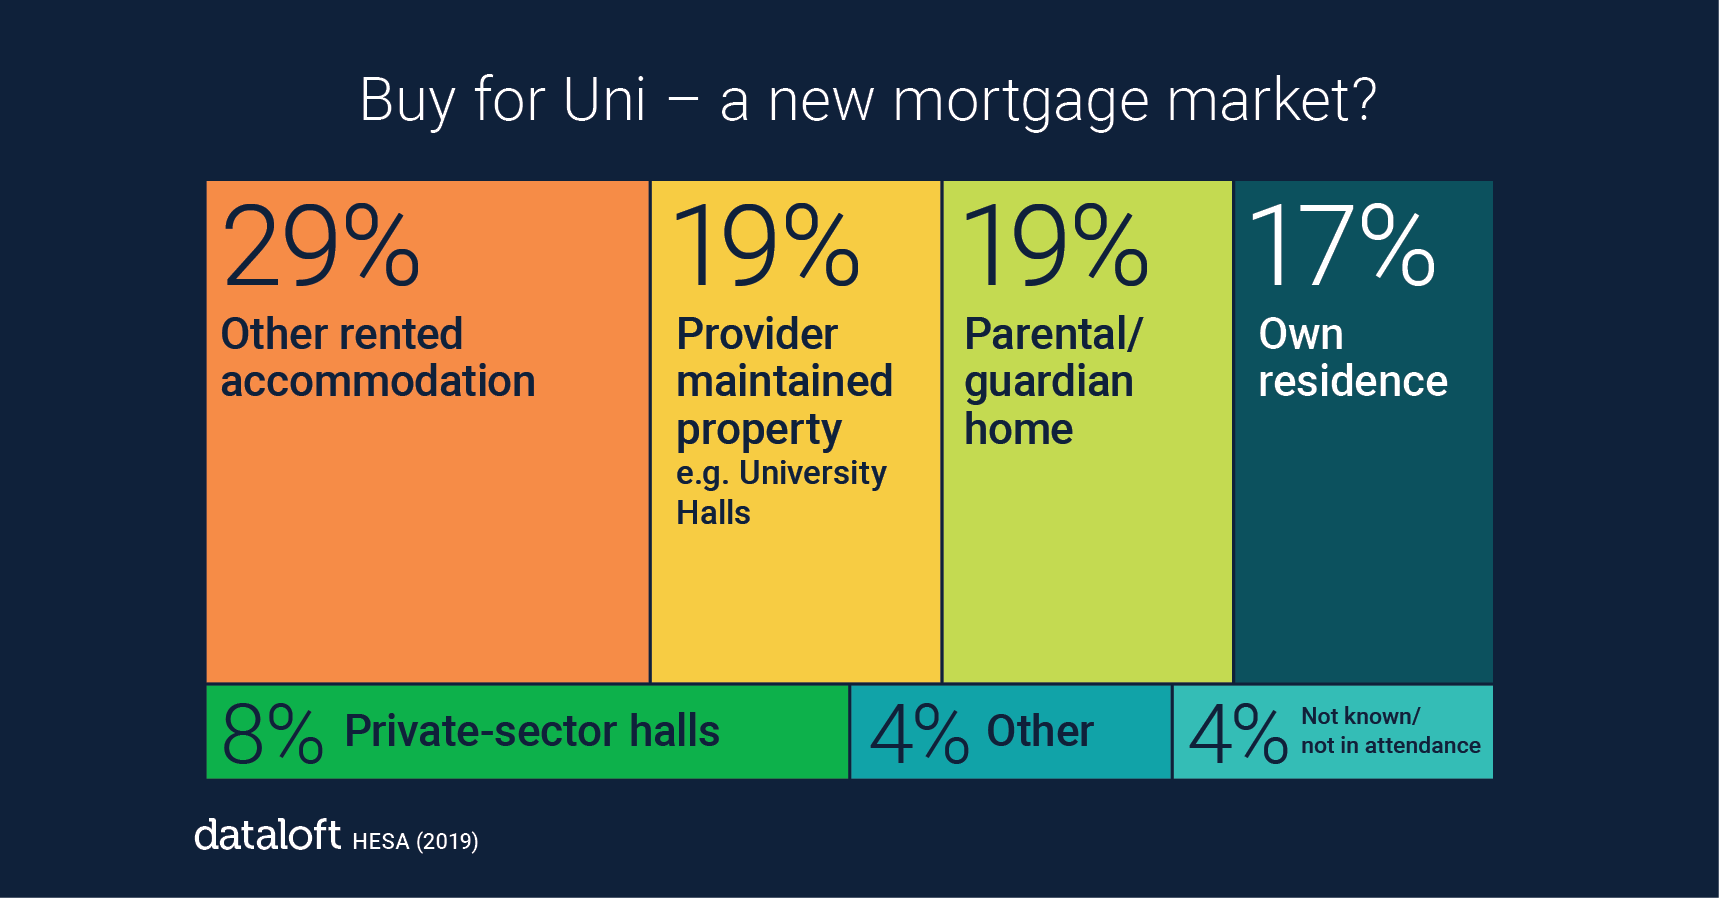 132 Dataloft inform Editors pick 1 - STUDENT ACCOMMODATION – A NEW MORTGAGE MARKET?